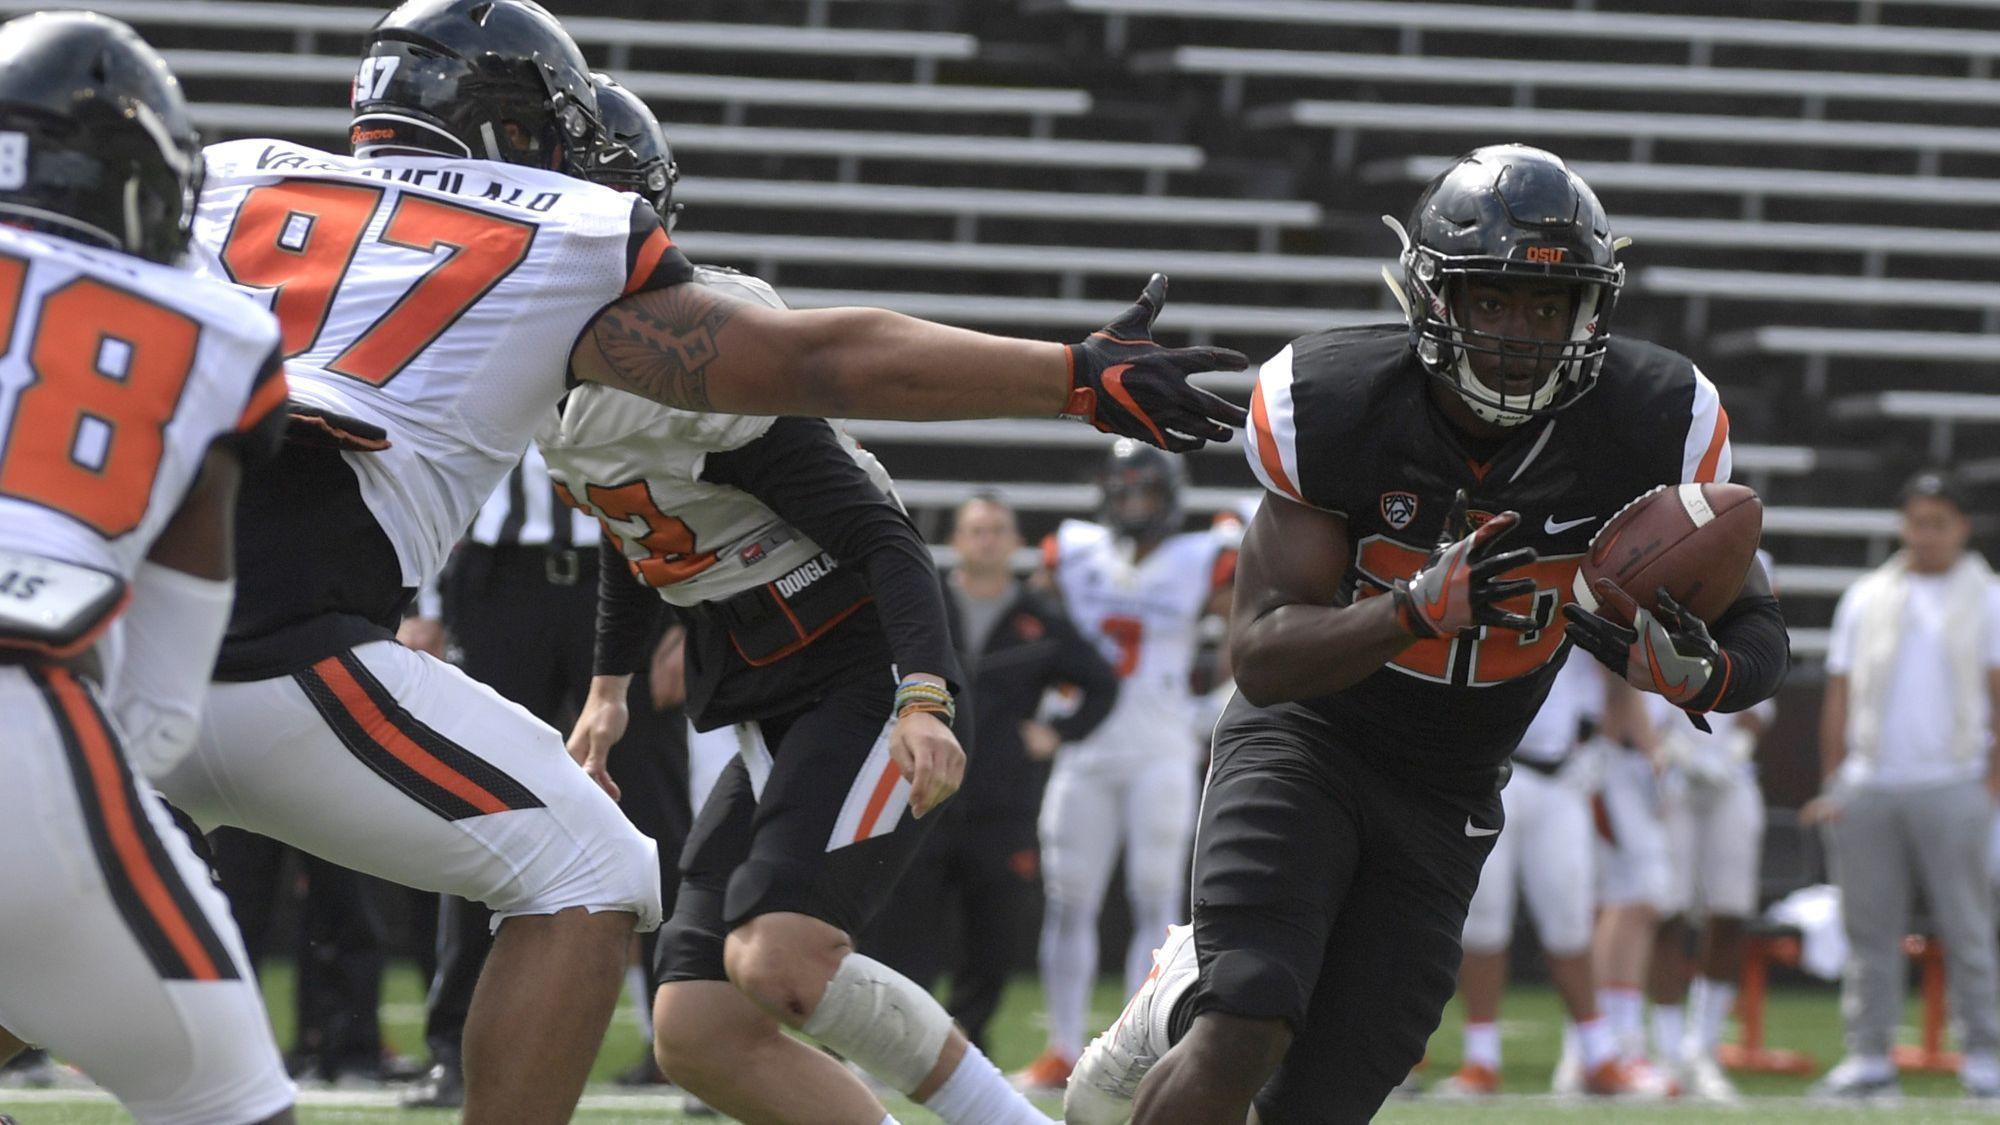 oregon state eager to rebound ranked no 112 in 2018 preseason